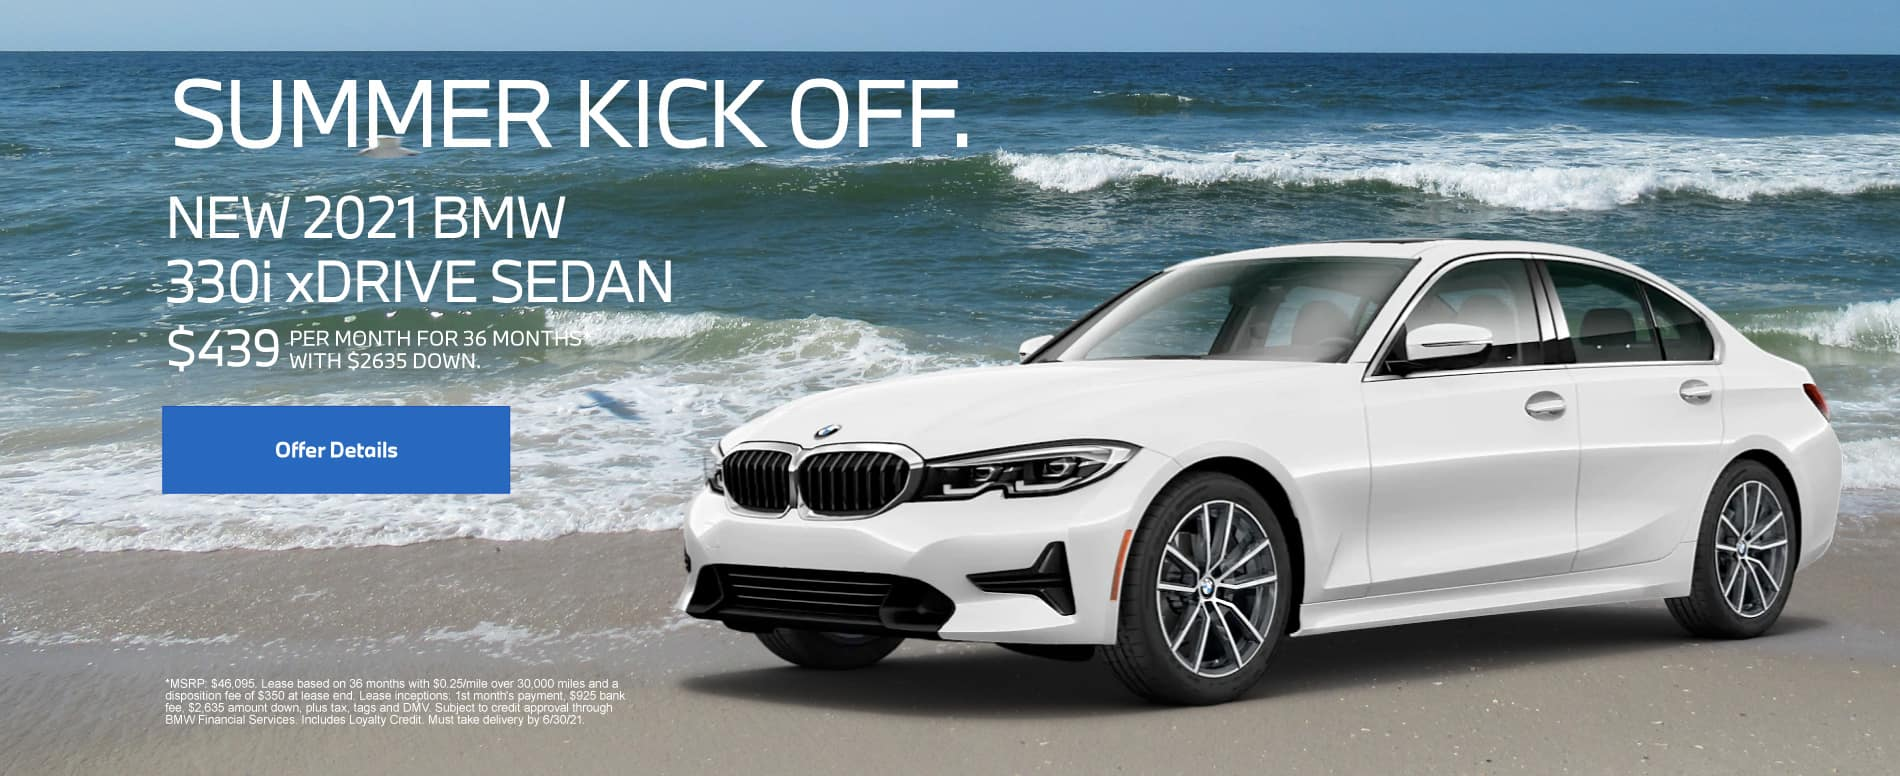 New 2021 BMW 330i xDrive Sedan- $439 per month for 36 months With $2635 down*